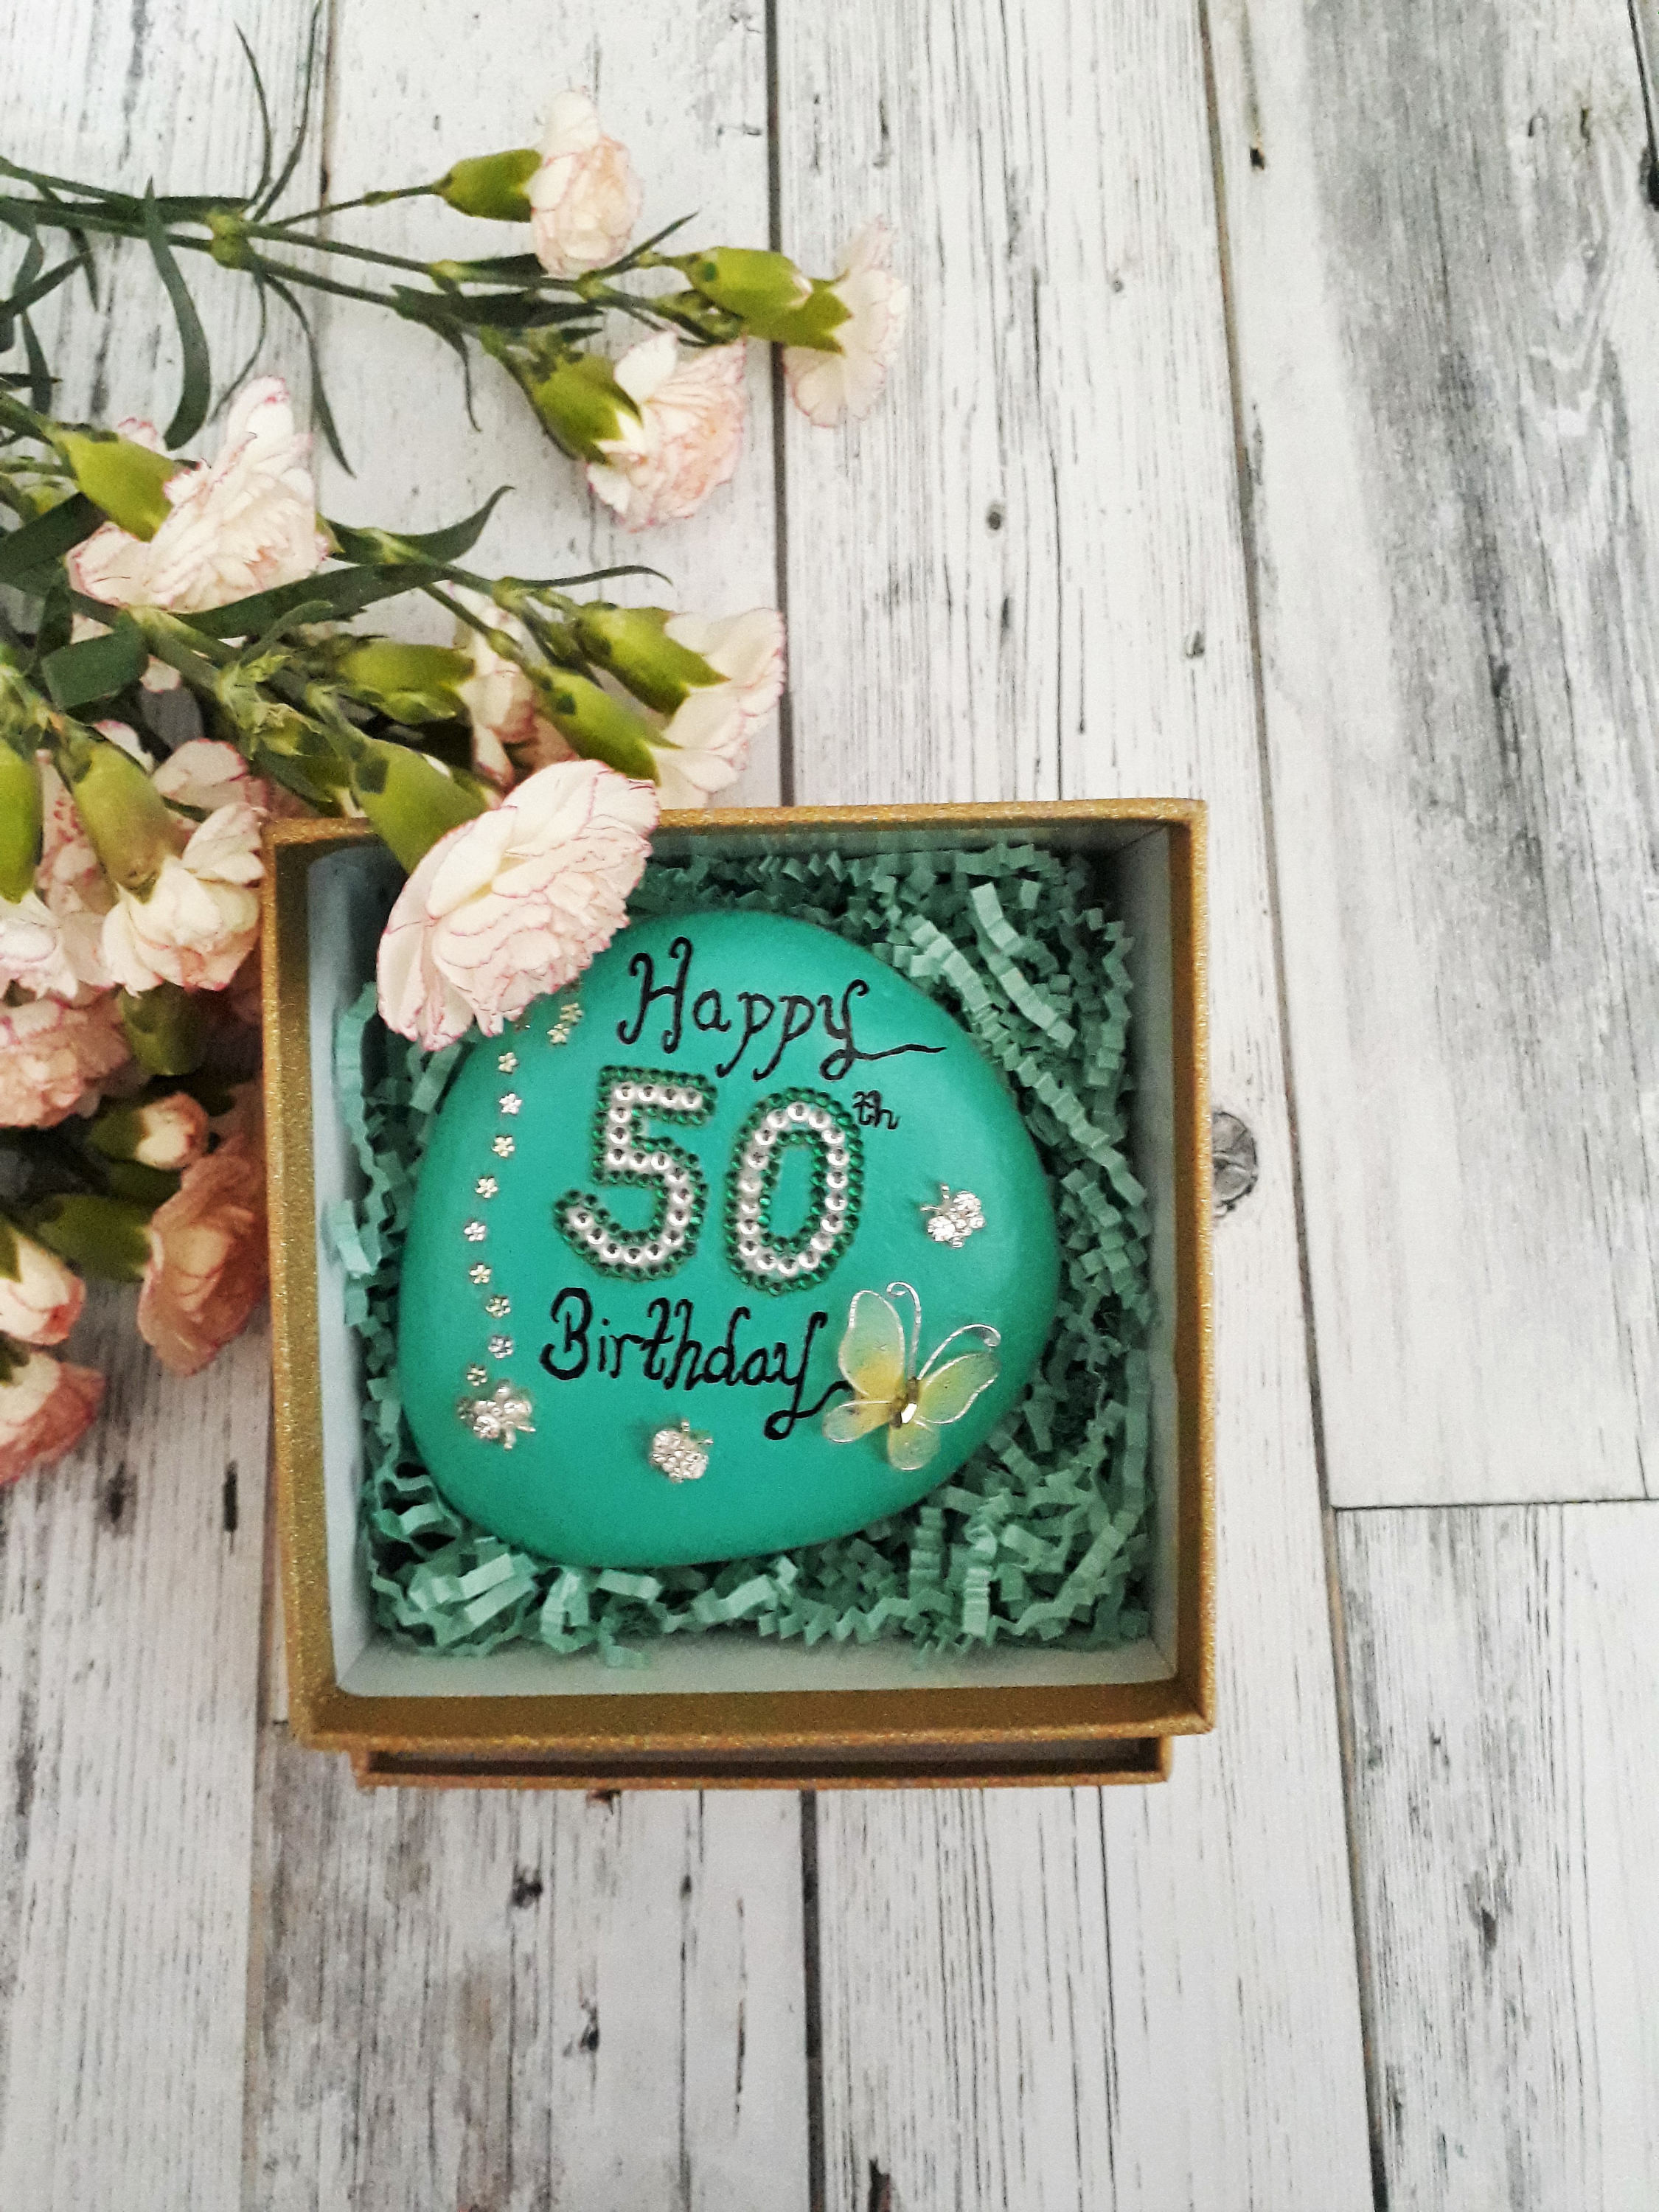 Best ideas about Best 50th Birthday Gifts For Her . Save or Pin 50th birthday t for her 50th birthday celebration stone Now.